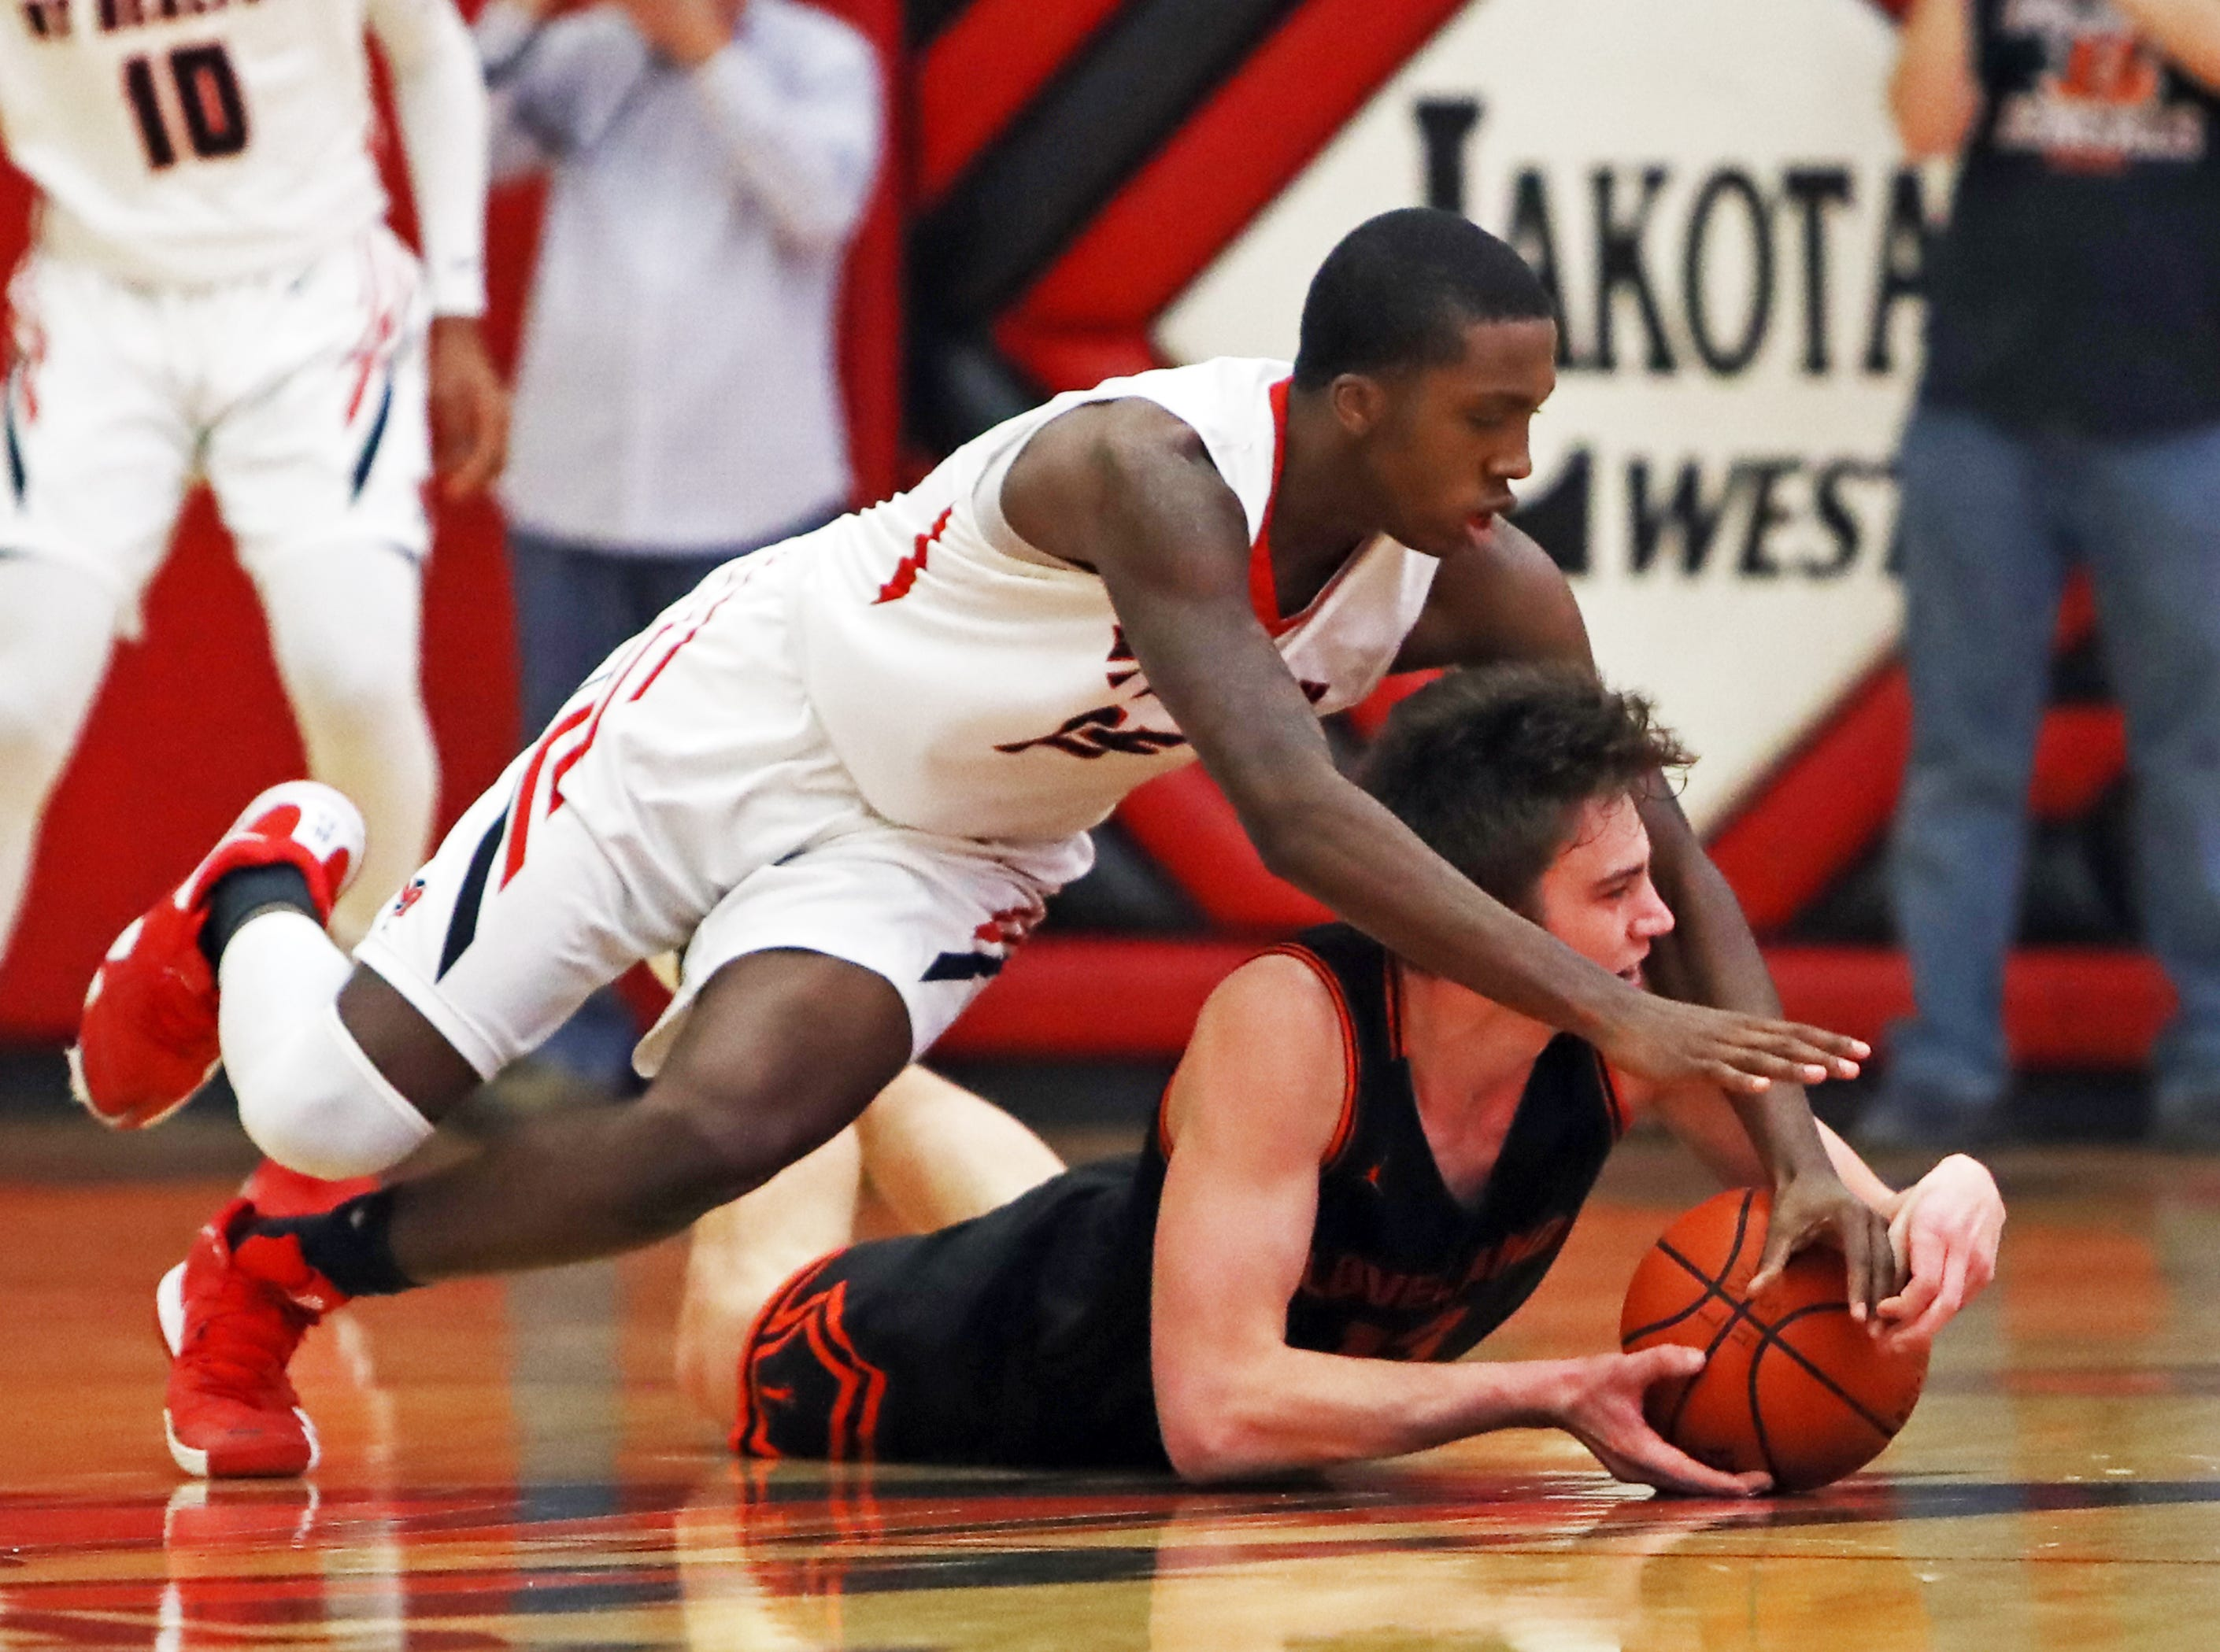 Mt. Healthy guard King Chambers and Loveland guard Jalen Greiser battle for a loose ball in the sectional playoffs at Lakota West High School Feb. 23, 2019.